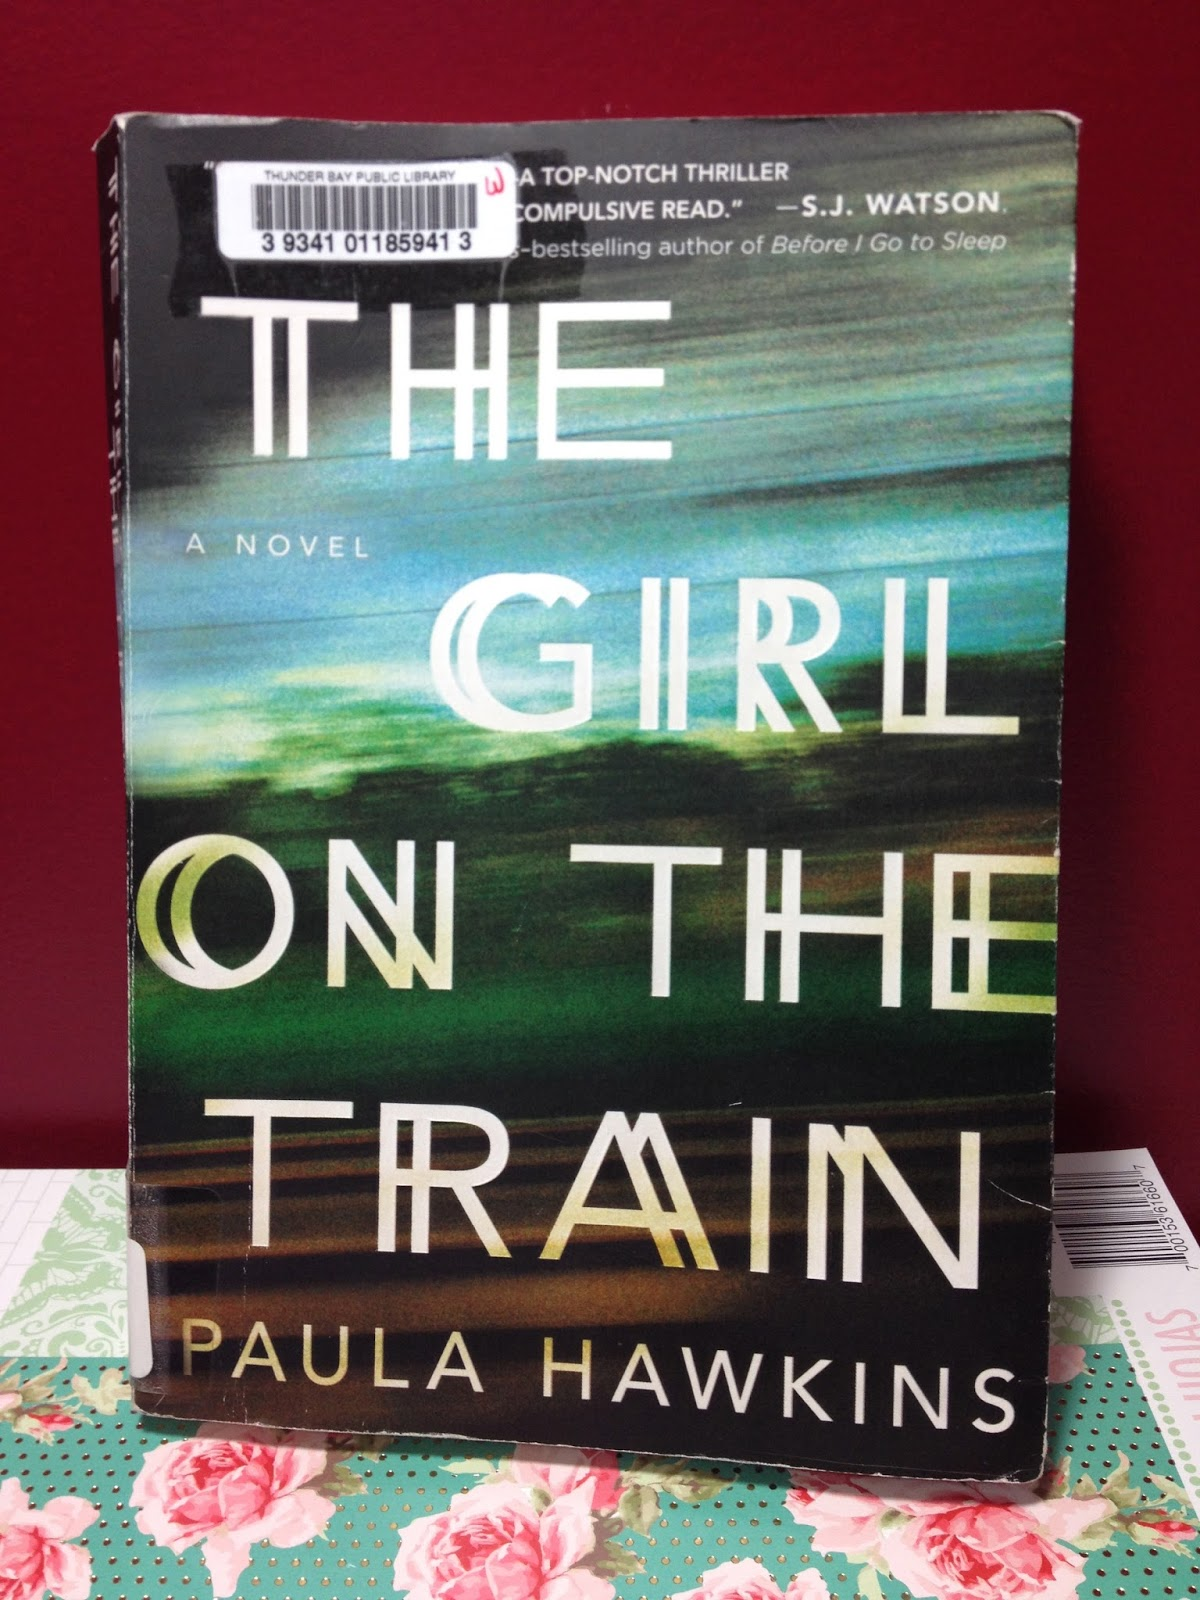 Tracys Treasures  The Girl on the Train   Book Review This book is about a woman named Rachel who commutes to work daily on the  train  At a certain stop  she can see into a couple s window and into their  life